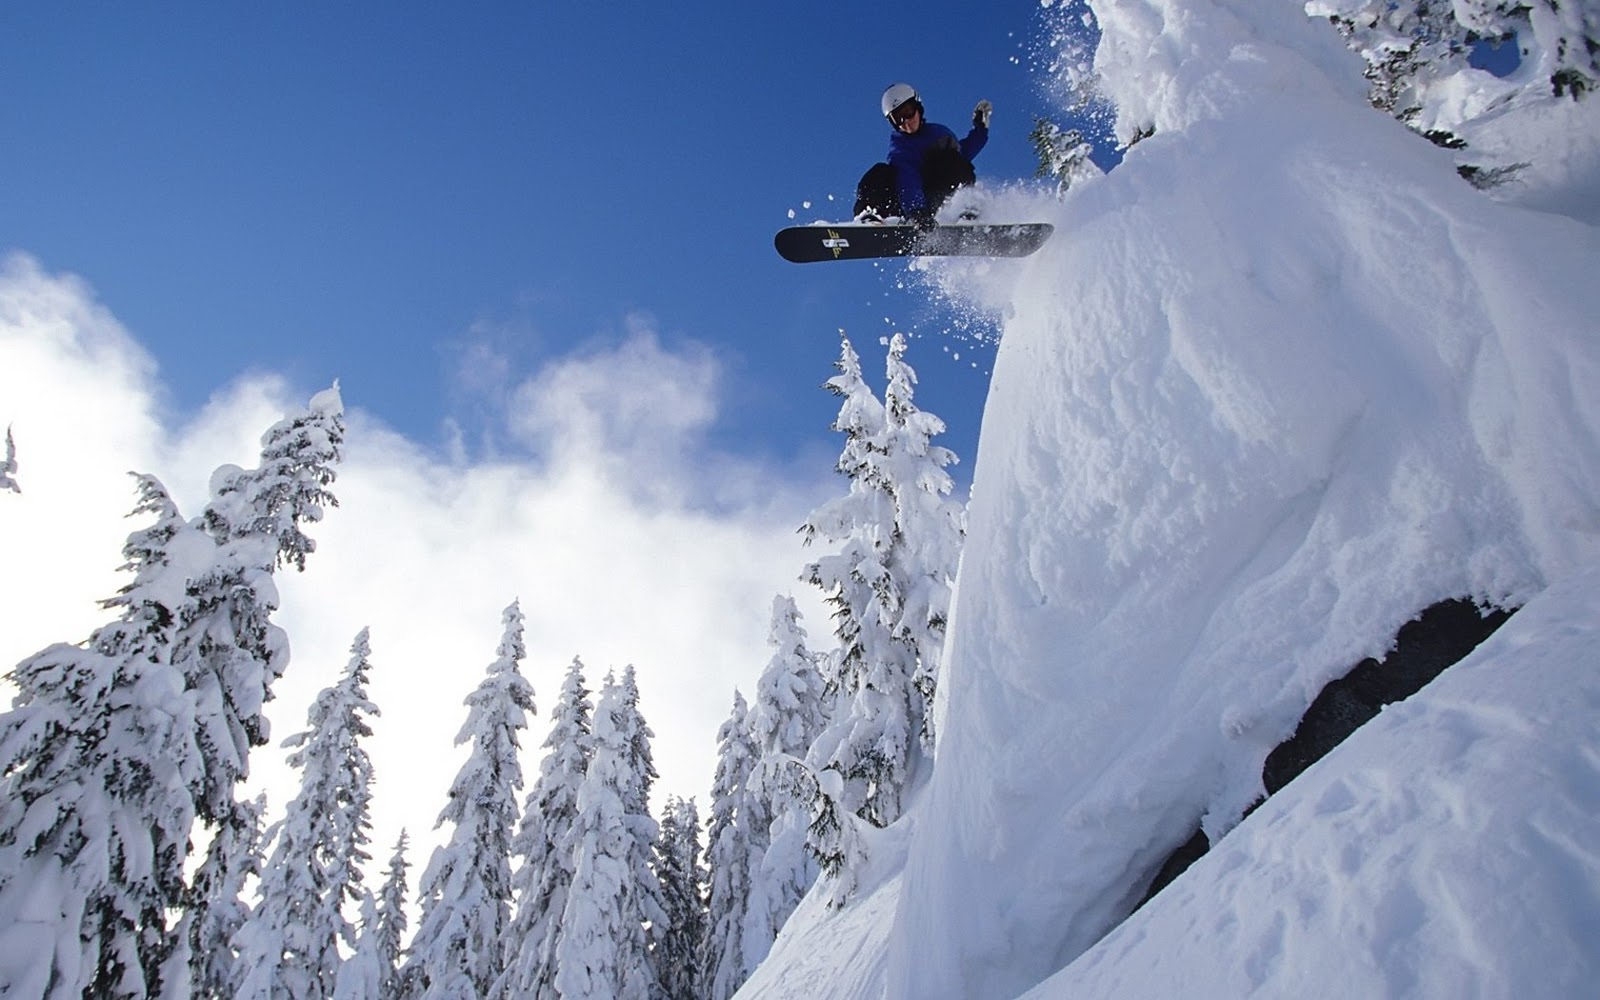 Cool Snowboard Pictures - Snowbording Wallpapers | Cool ...